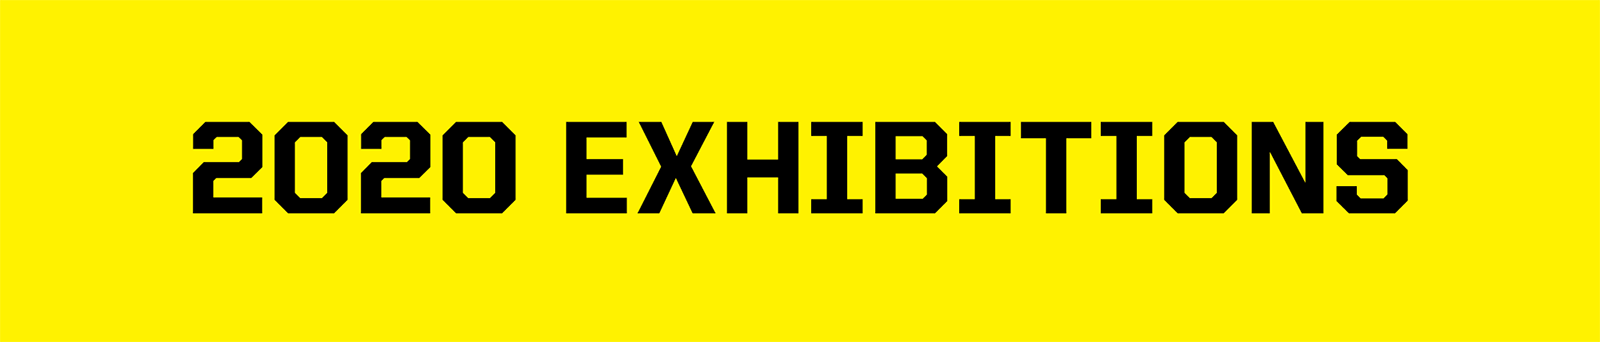 2020 Exhibitions banner